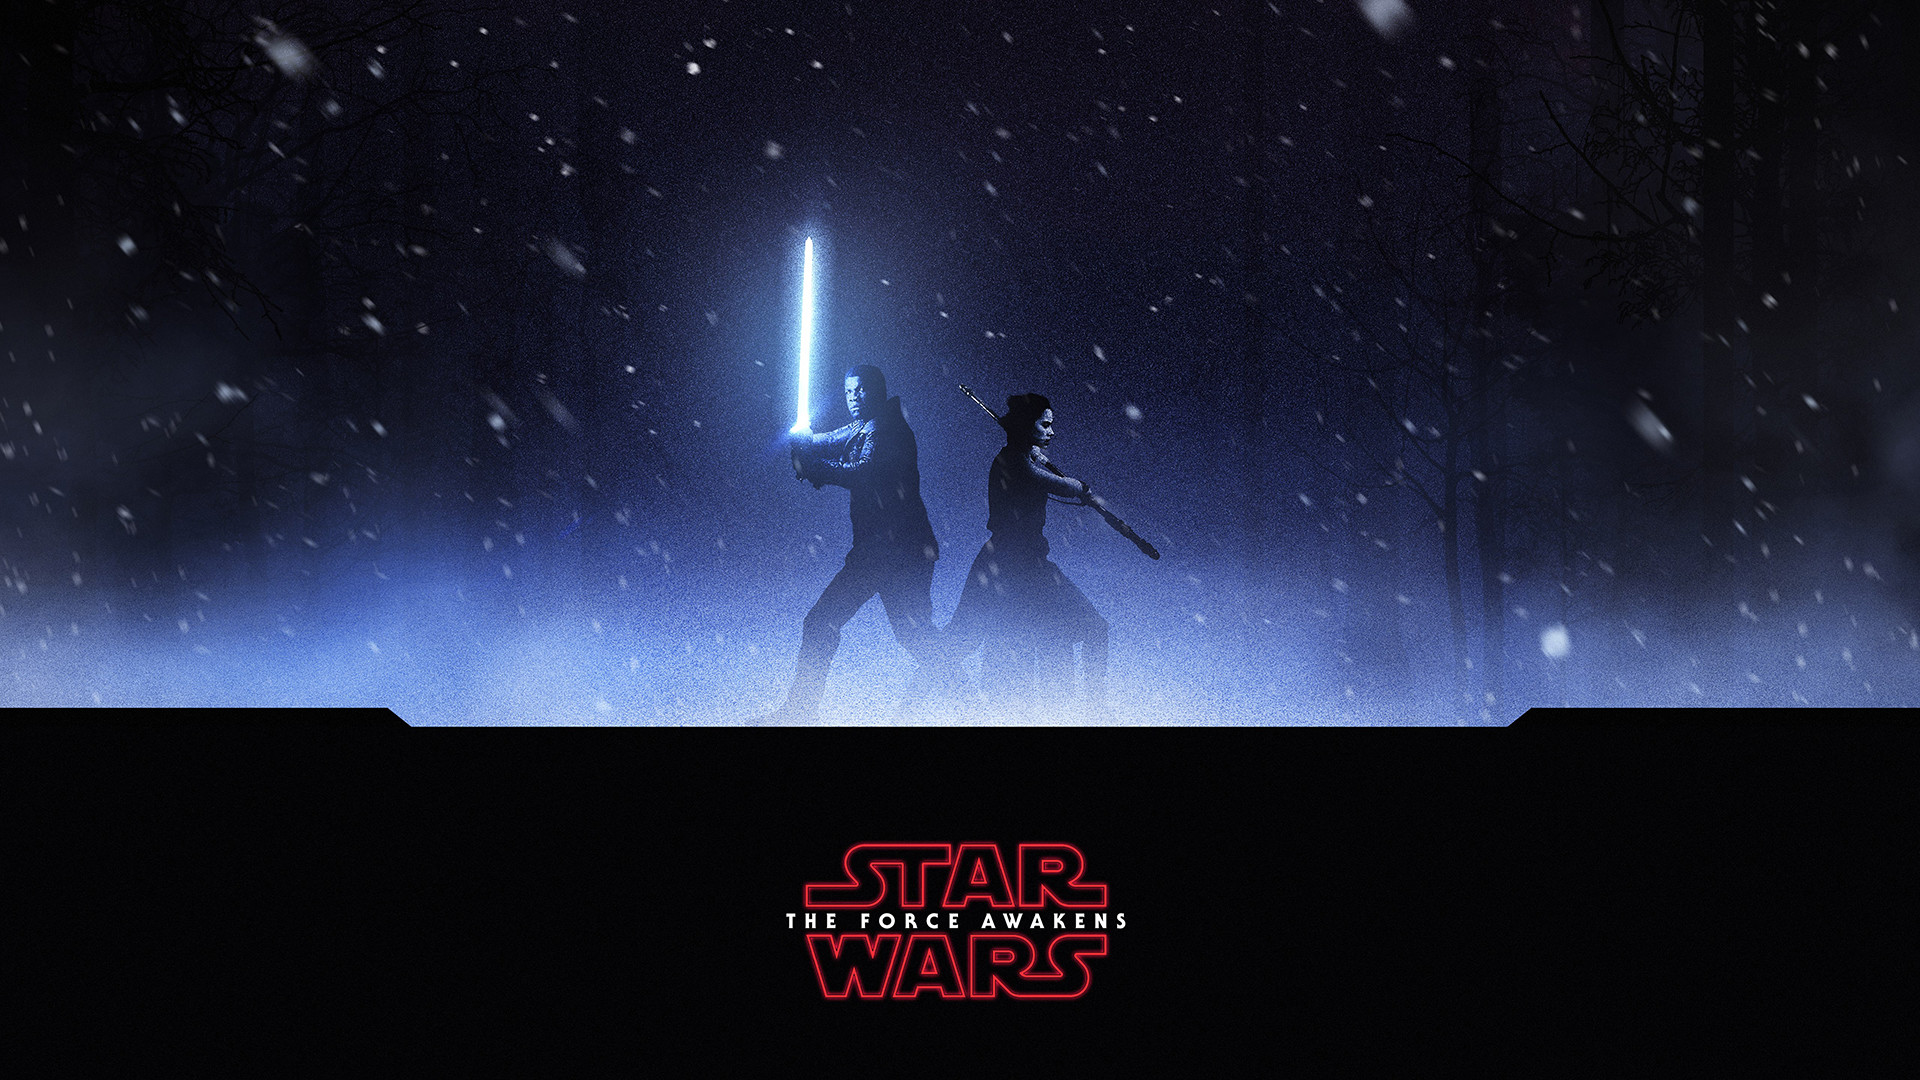 Star wars the force awakens wallpapers 70 images - Star wars the force awakens desktop wallpaper ...